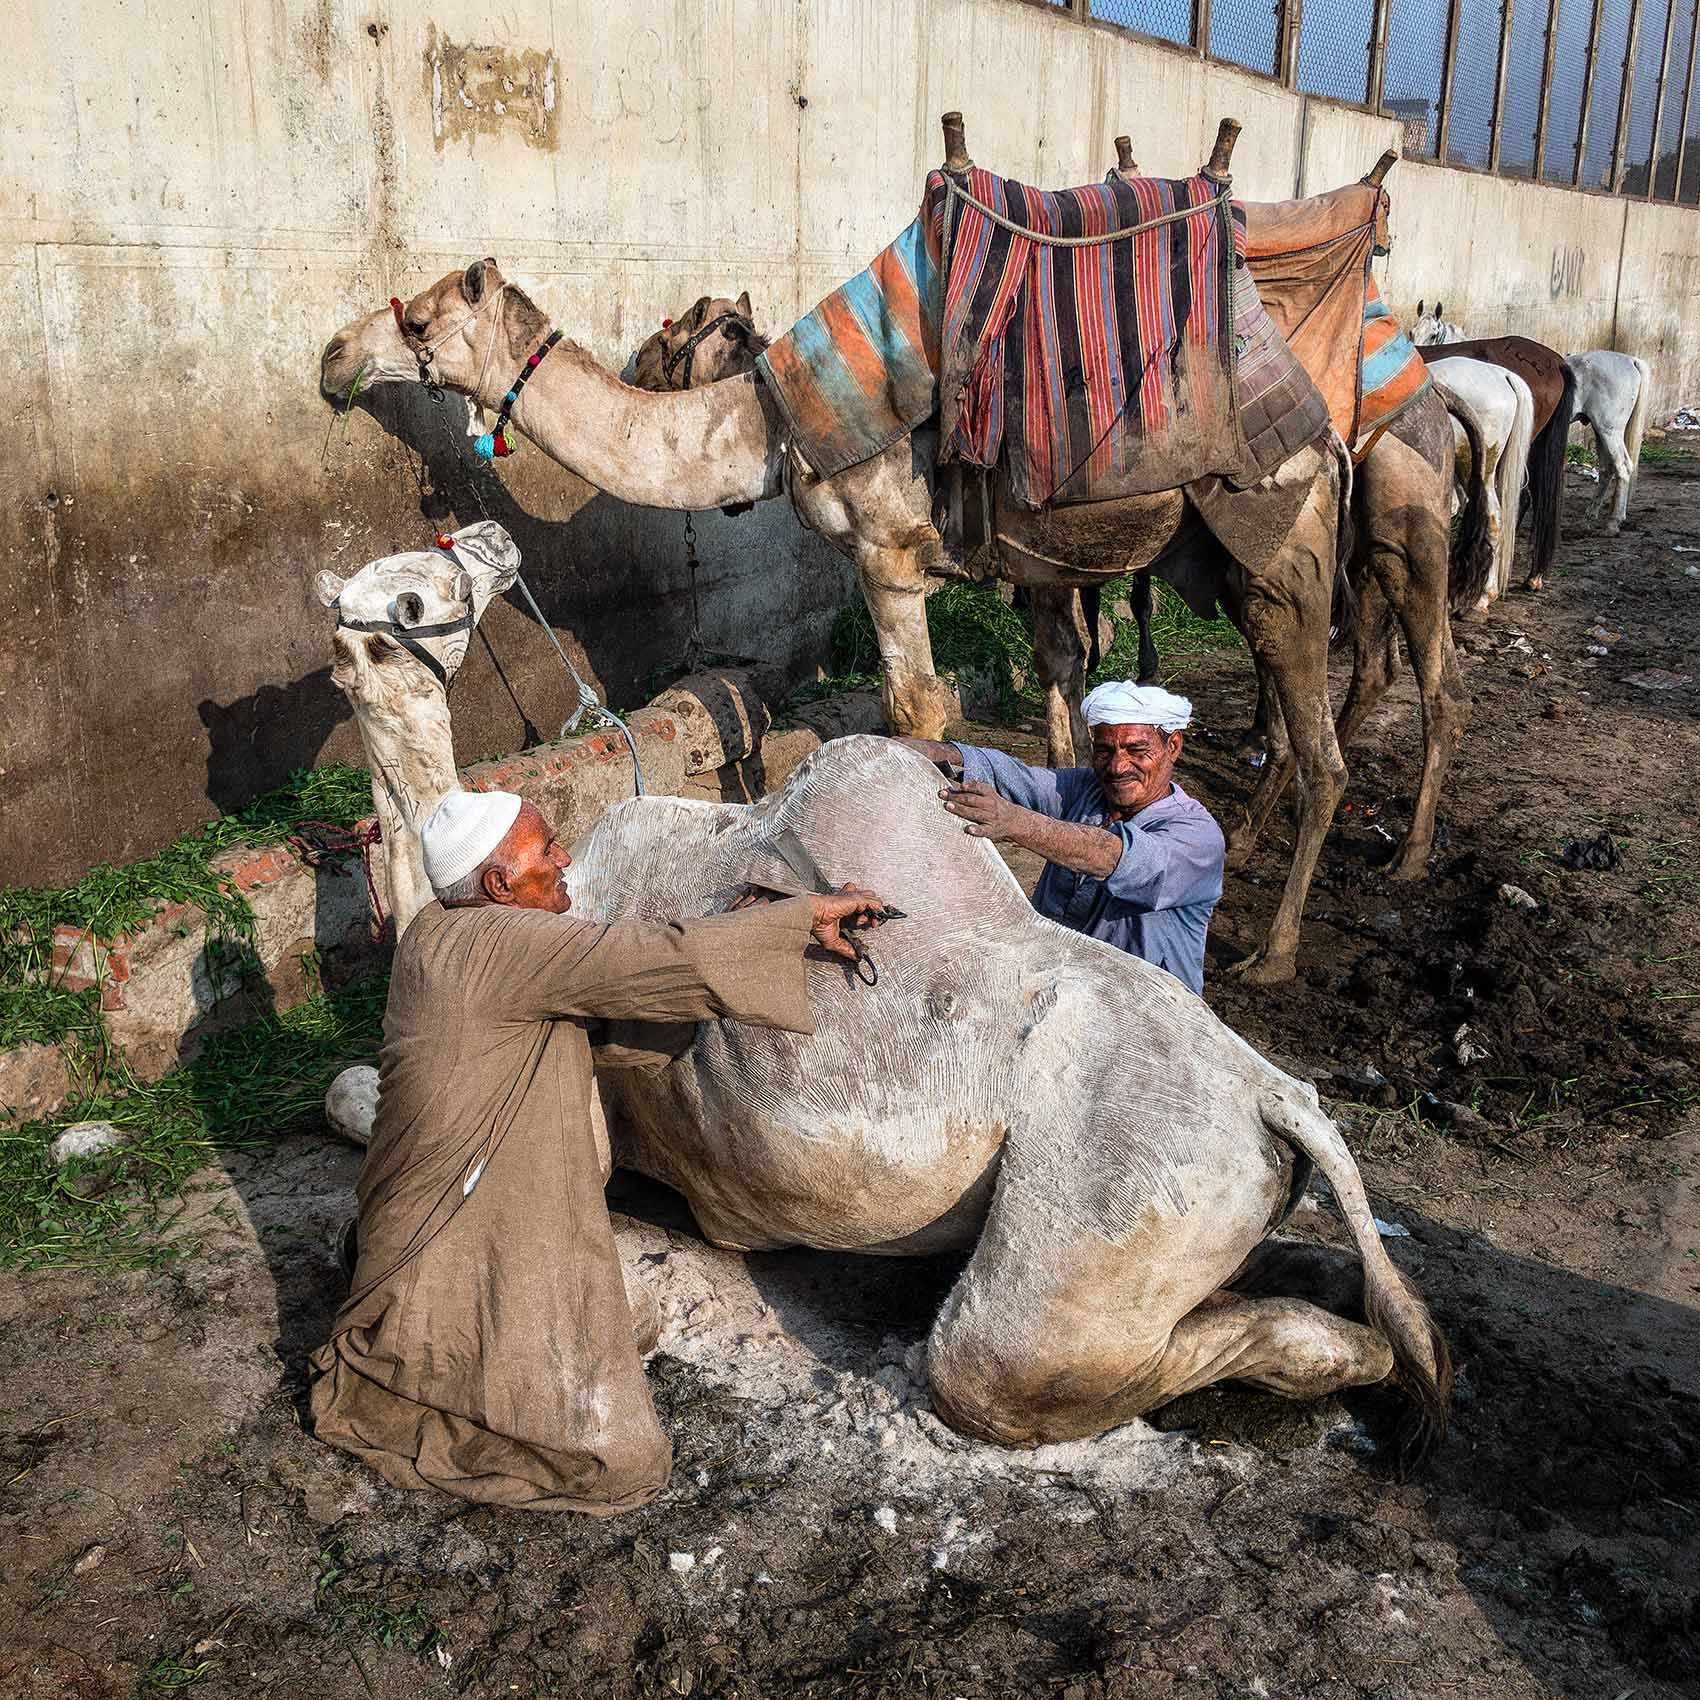 a camel gets a hair cut before heading out to be ridden by tourists at the great pyramids